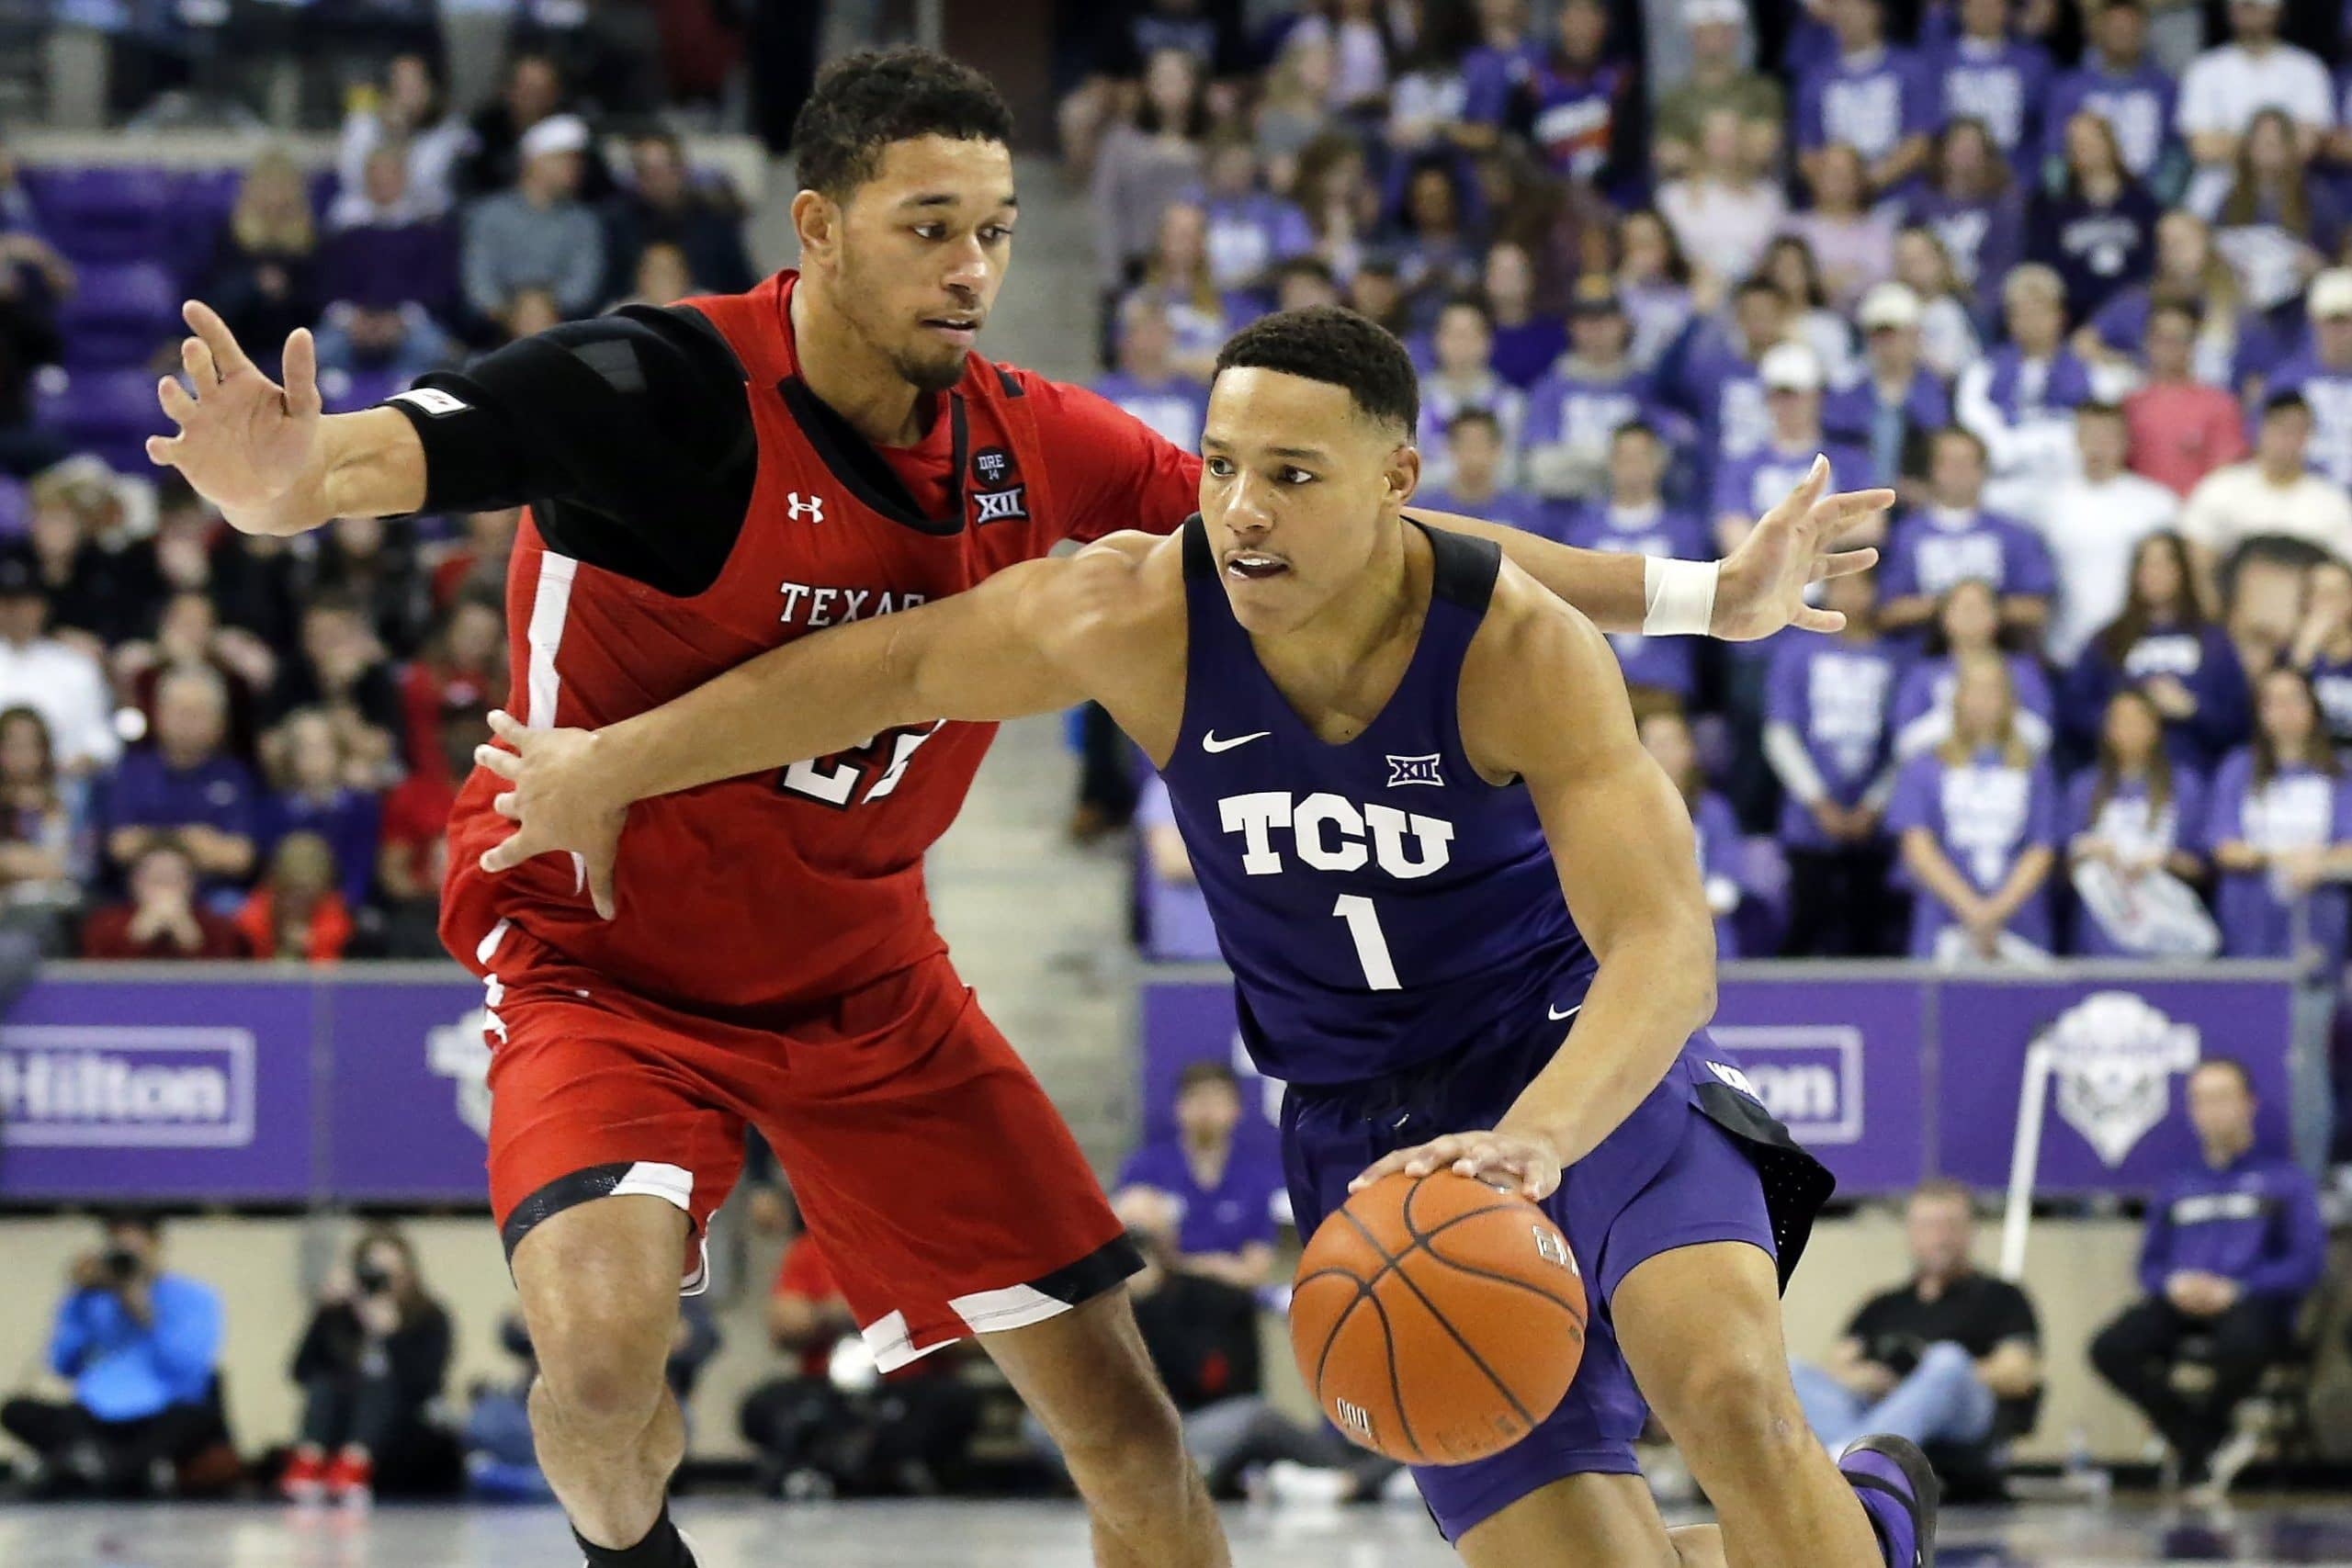 TCU Horned Frogs at Texas Tech Red Raiders 02/10/20 Odds Pick & Prediction